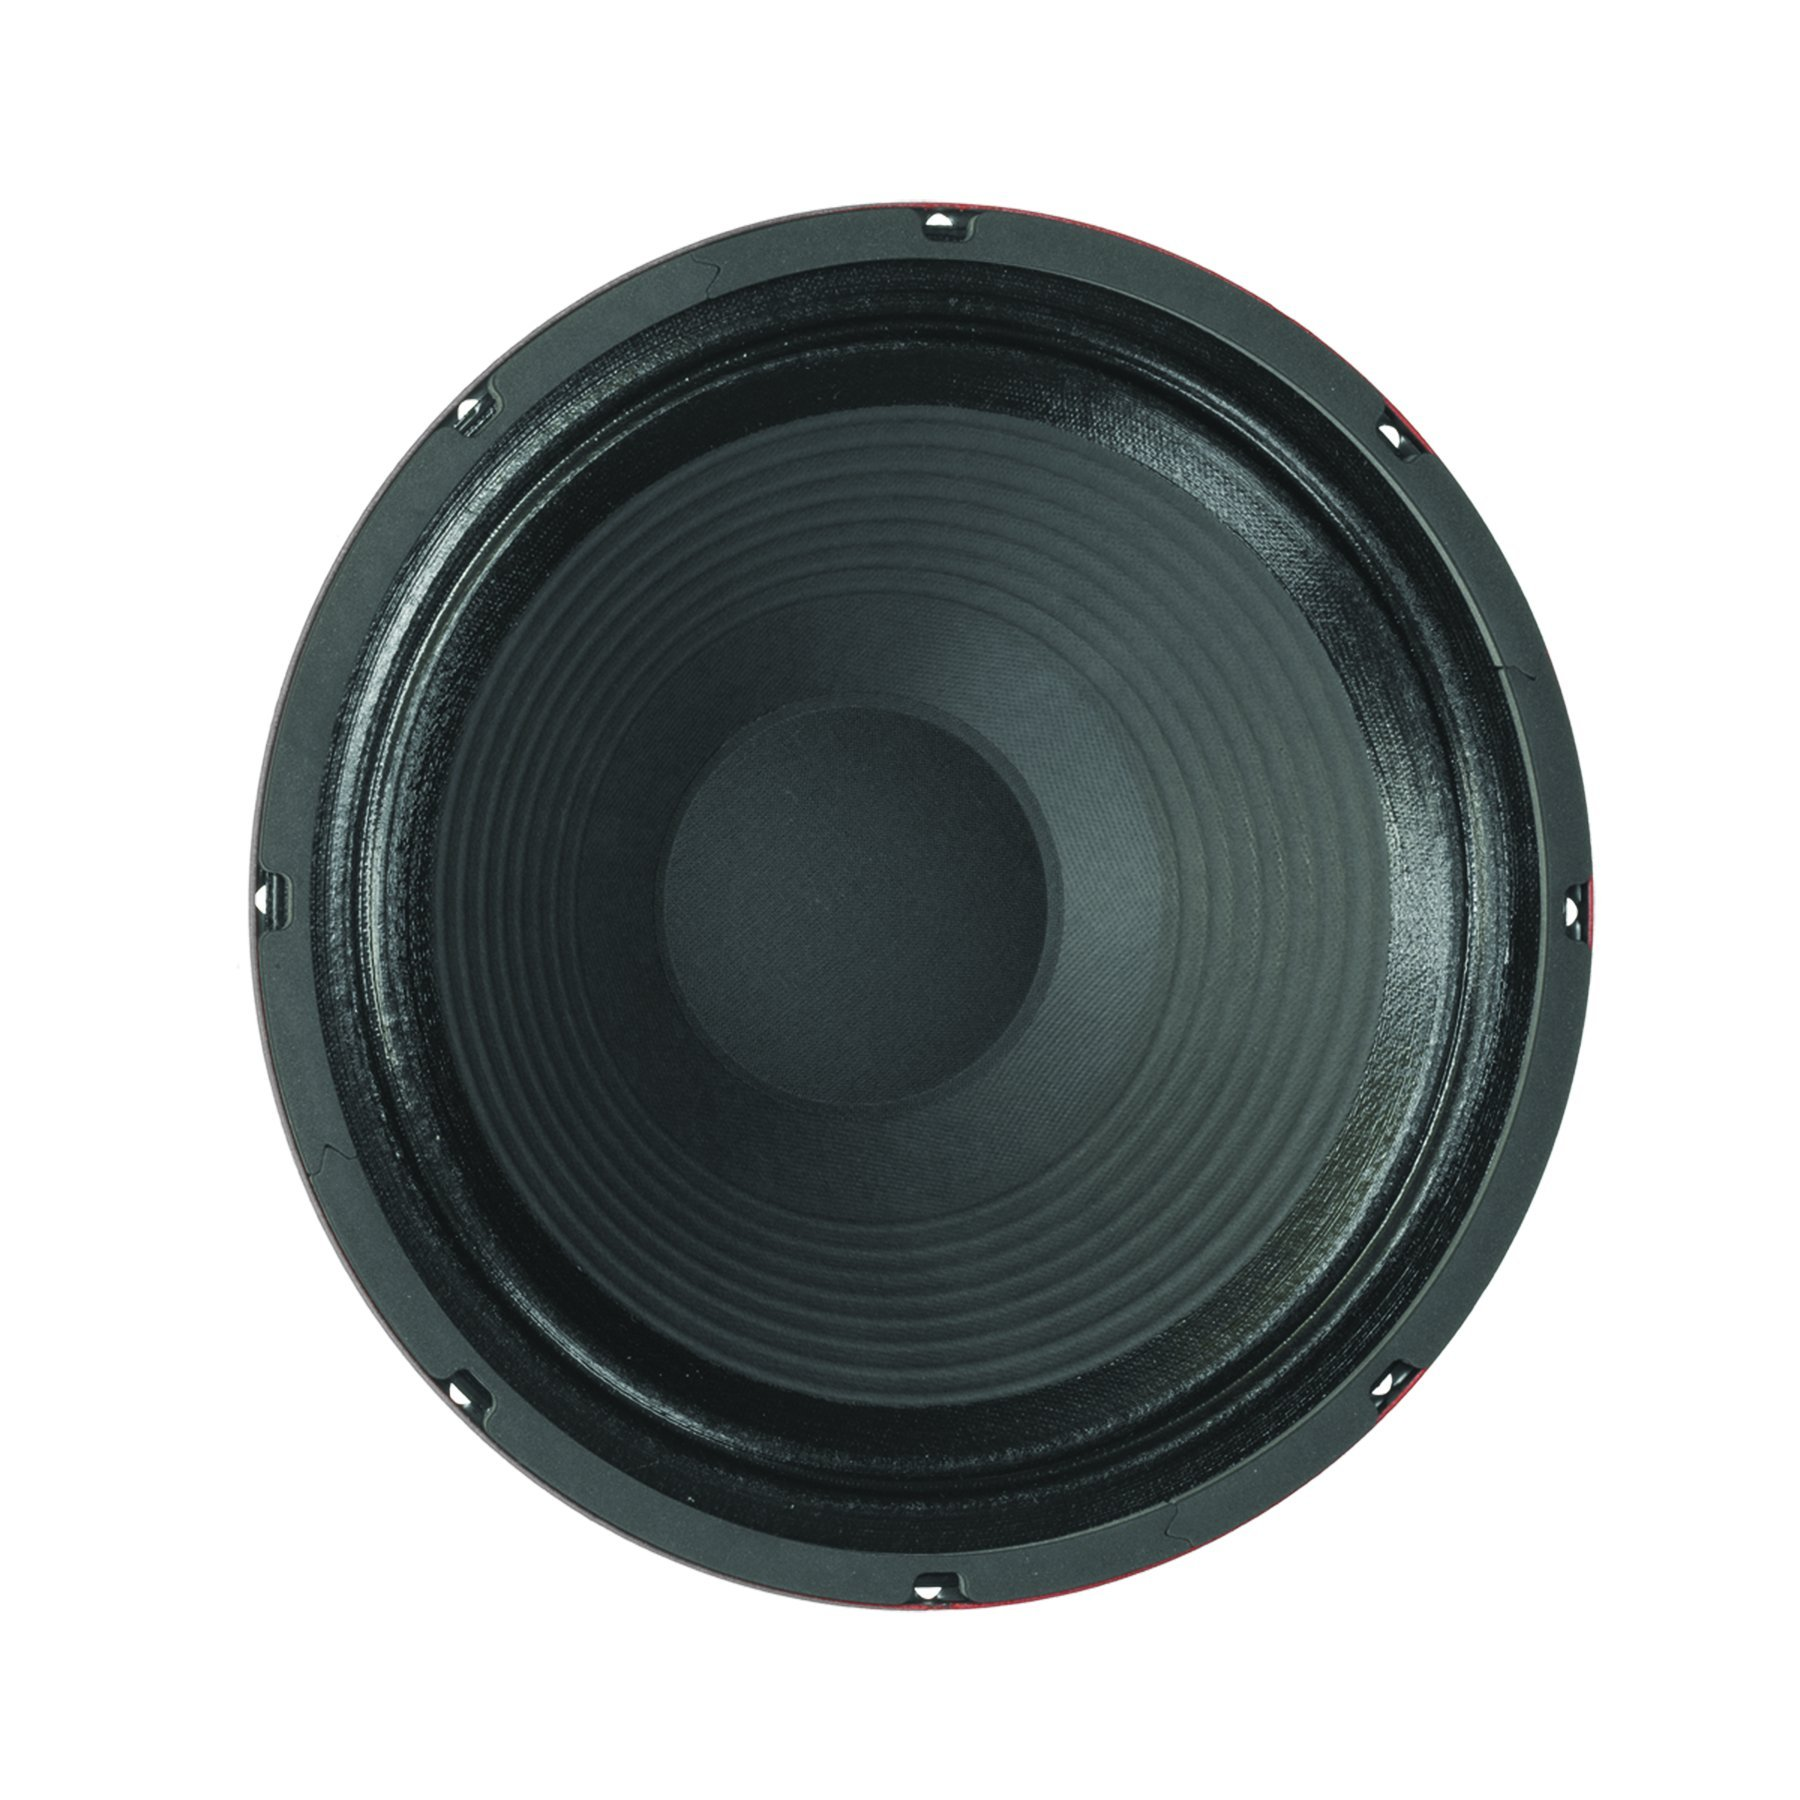 Eminence Red Coat Series Man O War 12'' Guitar Speaker, 120 Watts at 8 Ohms by Eminence (Image #2)